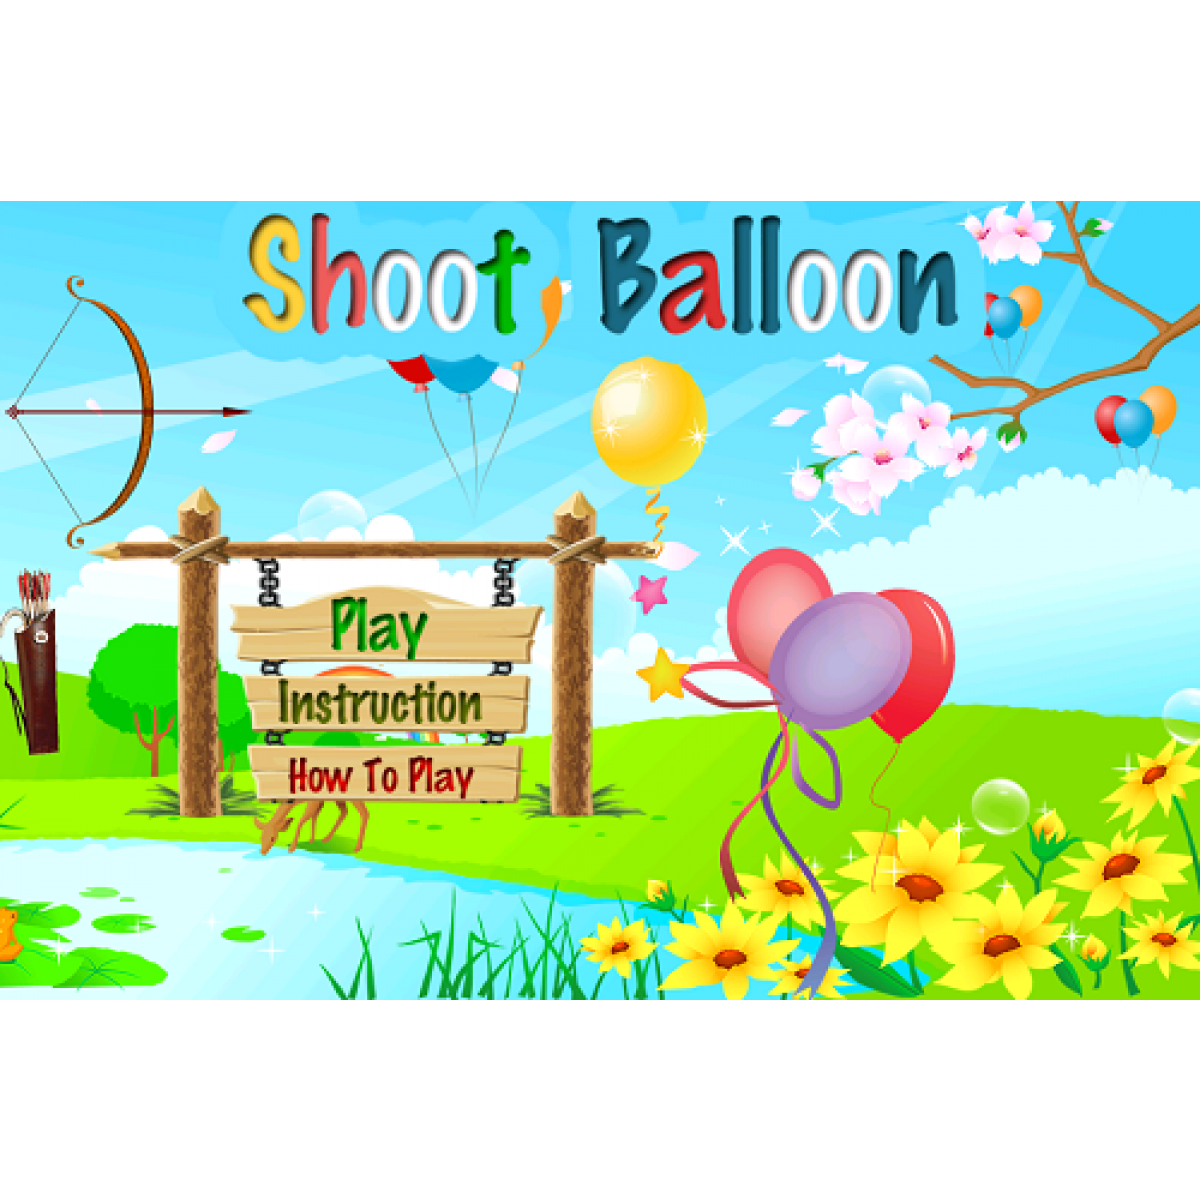 Balloon clipart shooting